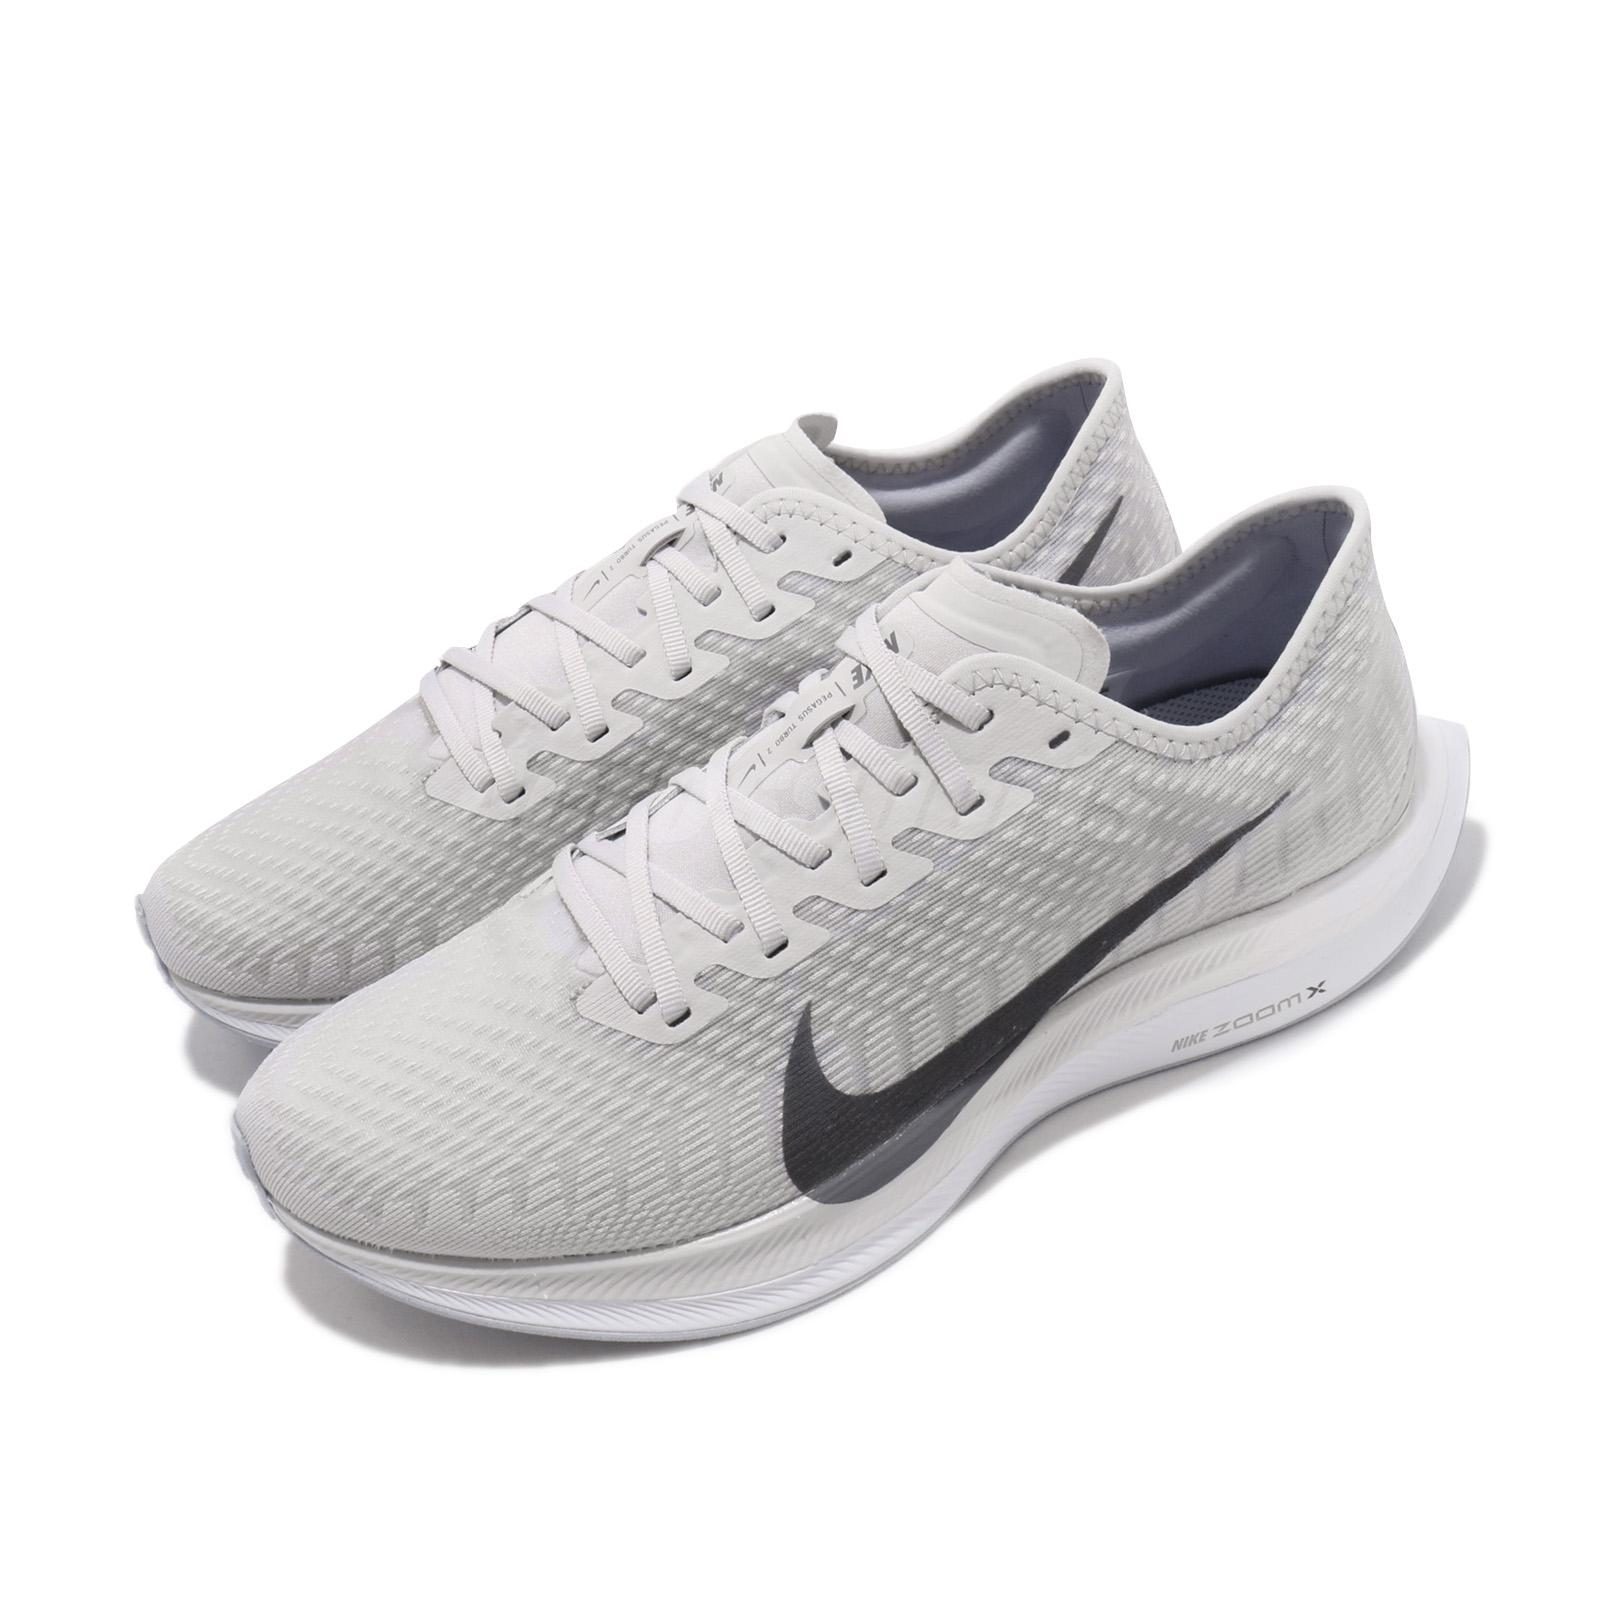 4bb370a0 Details about Nike Zoom Pegasus Turbo 2 Vast Grey White Men Running Shoes  Sneakers AT2863-002